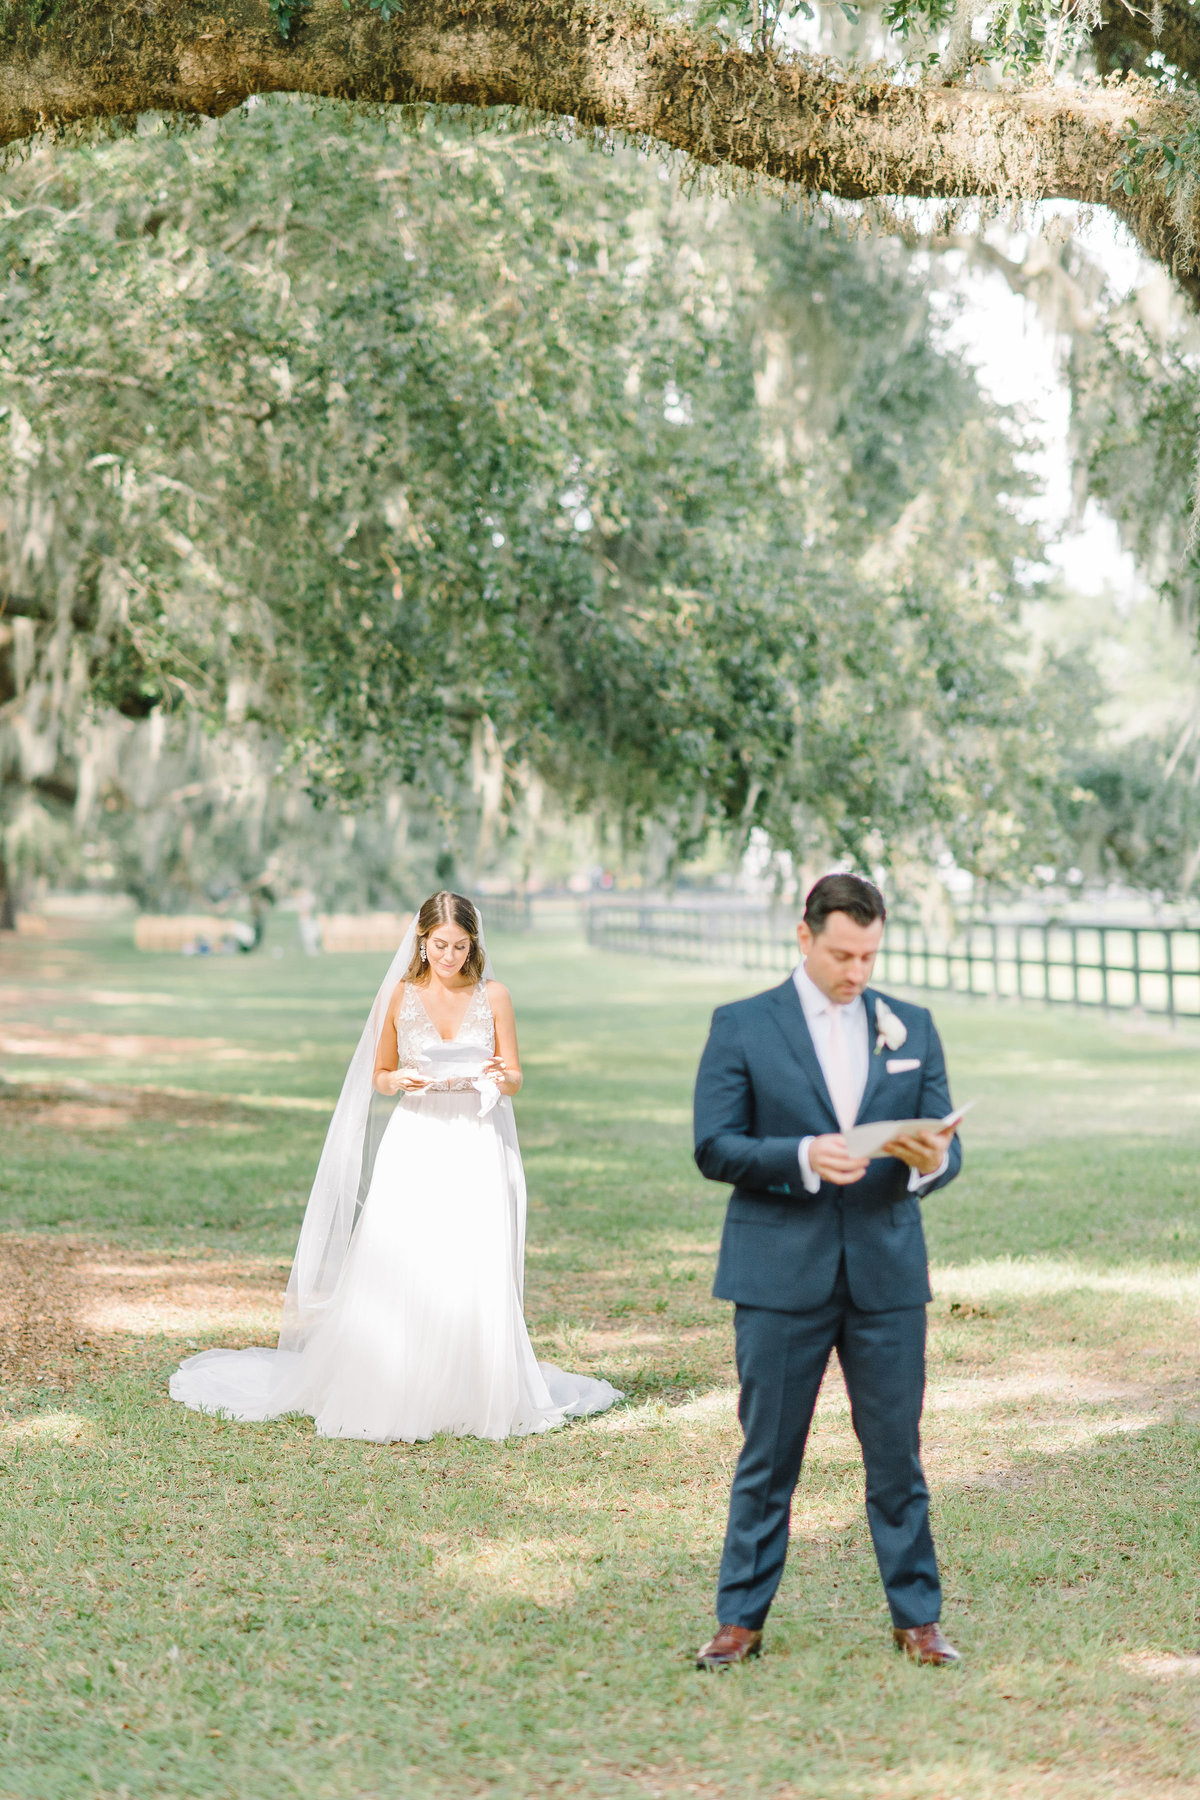 Boone Hall Plantation Bride and Groom Exchanging Notes before First Look